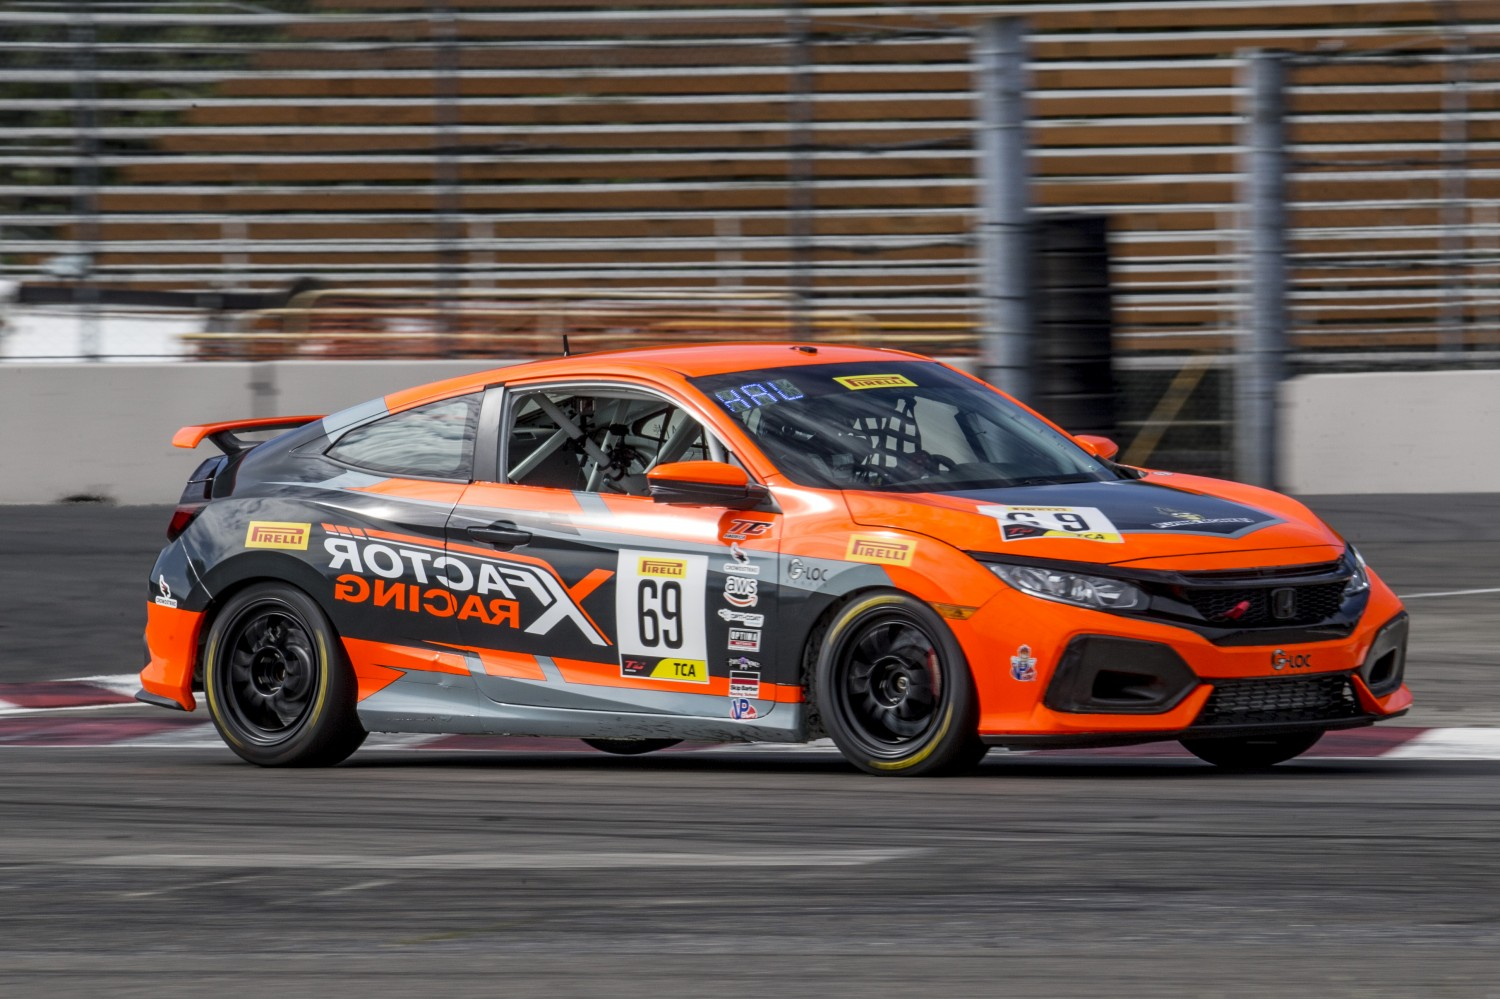 #69 Honda Civic Si of Chris Haldeman, Rose Cup Races, Portland OR  | Brian Cleary/SRO